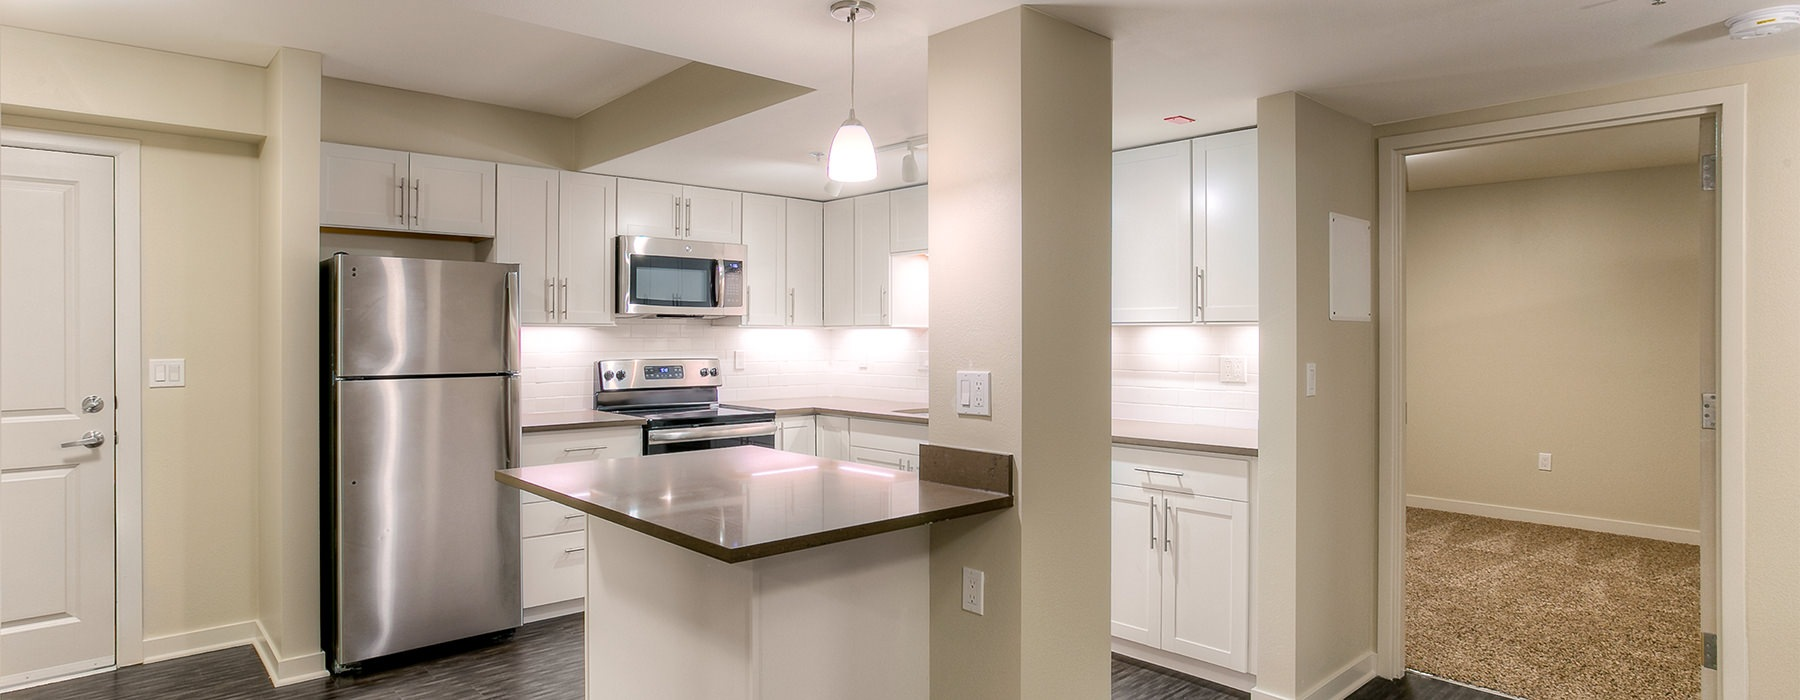 Well lit kitchen with stainless steel appliances